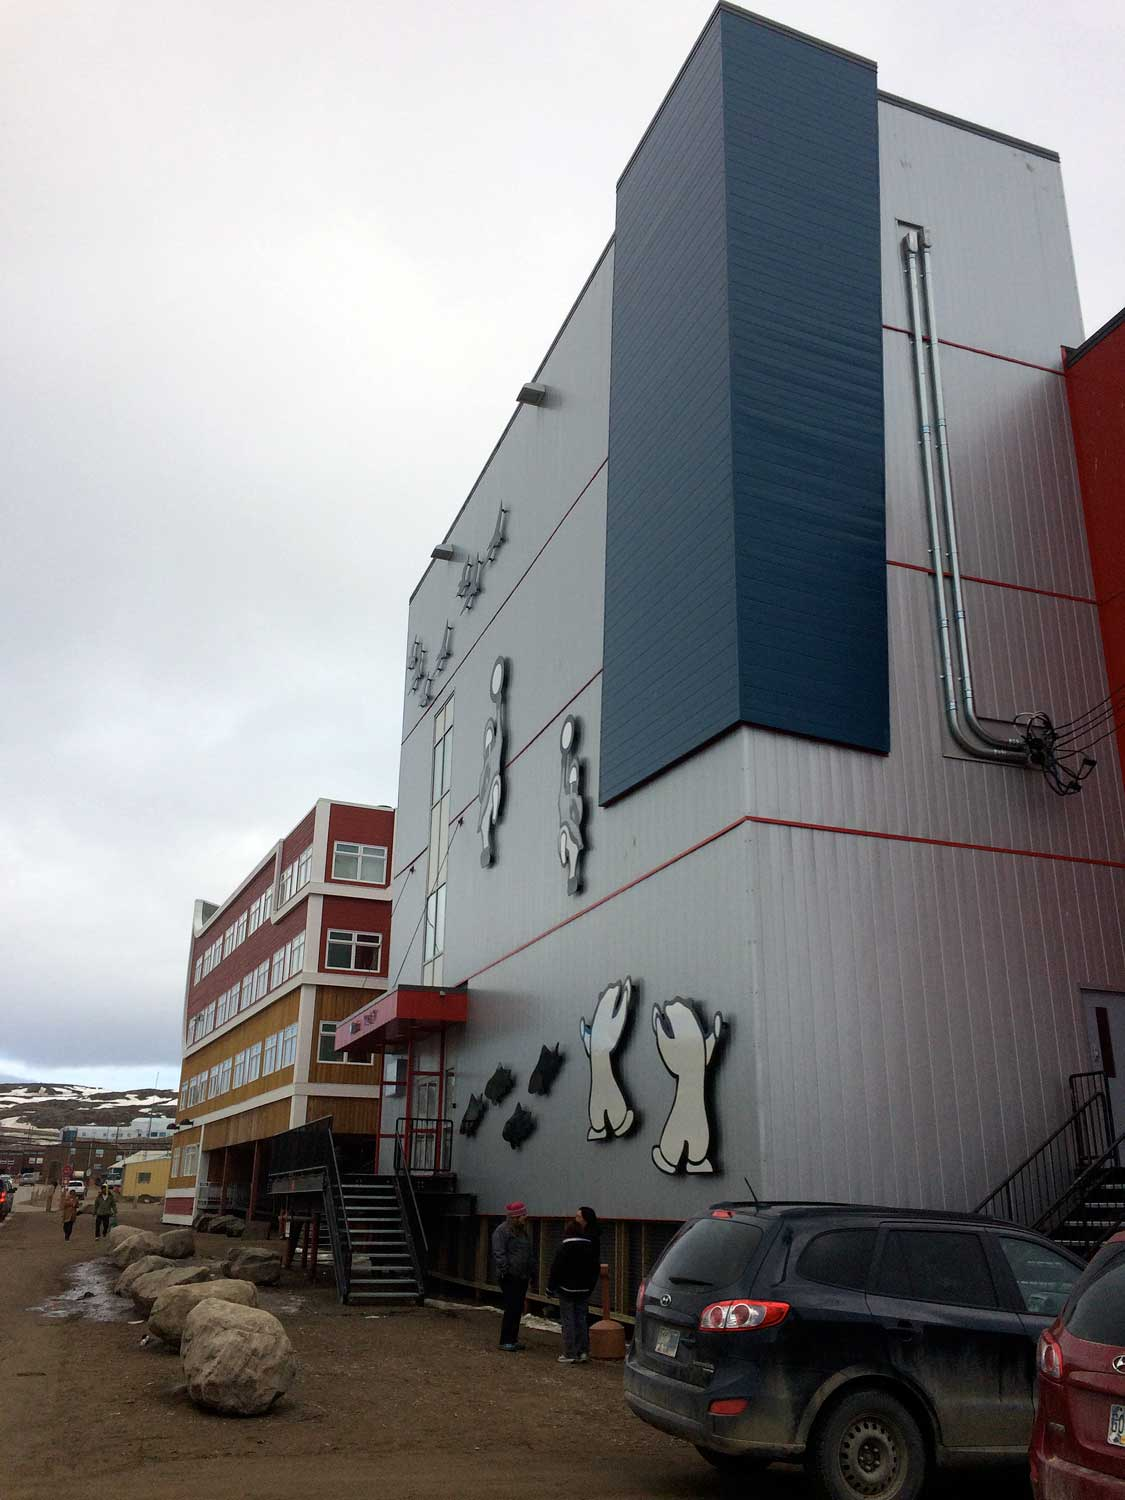 Polar on the exterior wall of new office building in Iqaluit, Nuanvut, Canada. ©Christine Montague